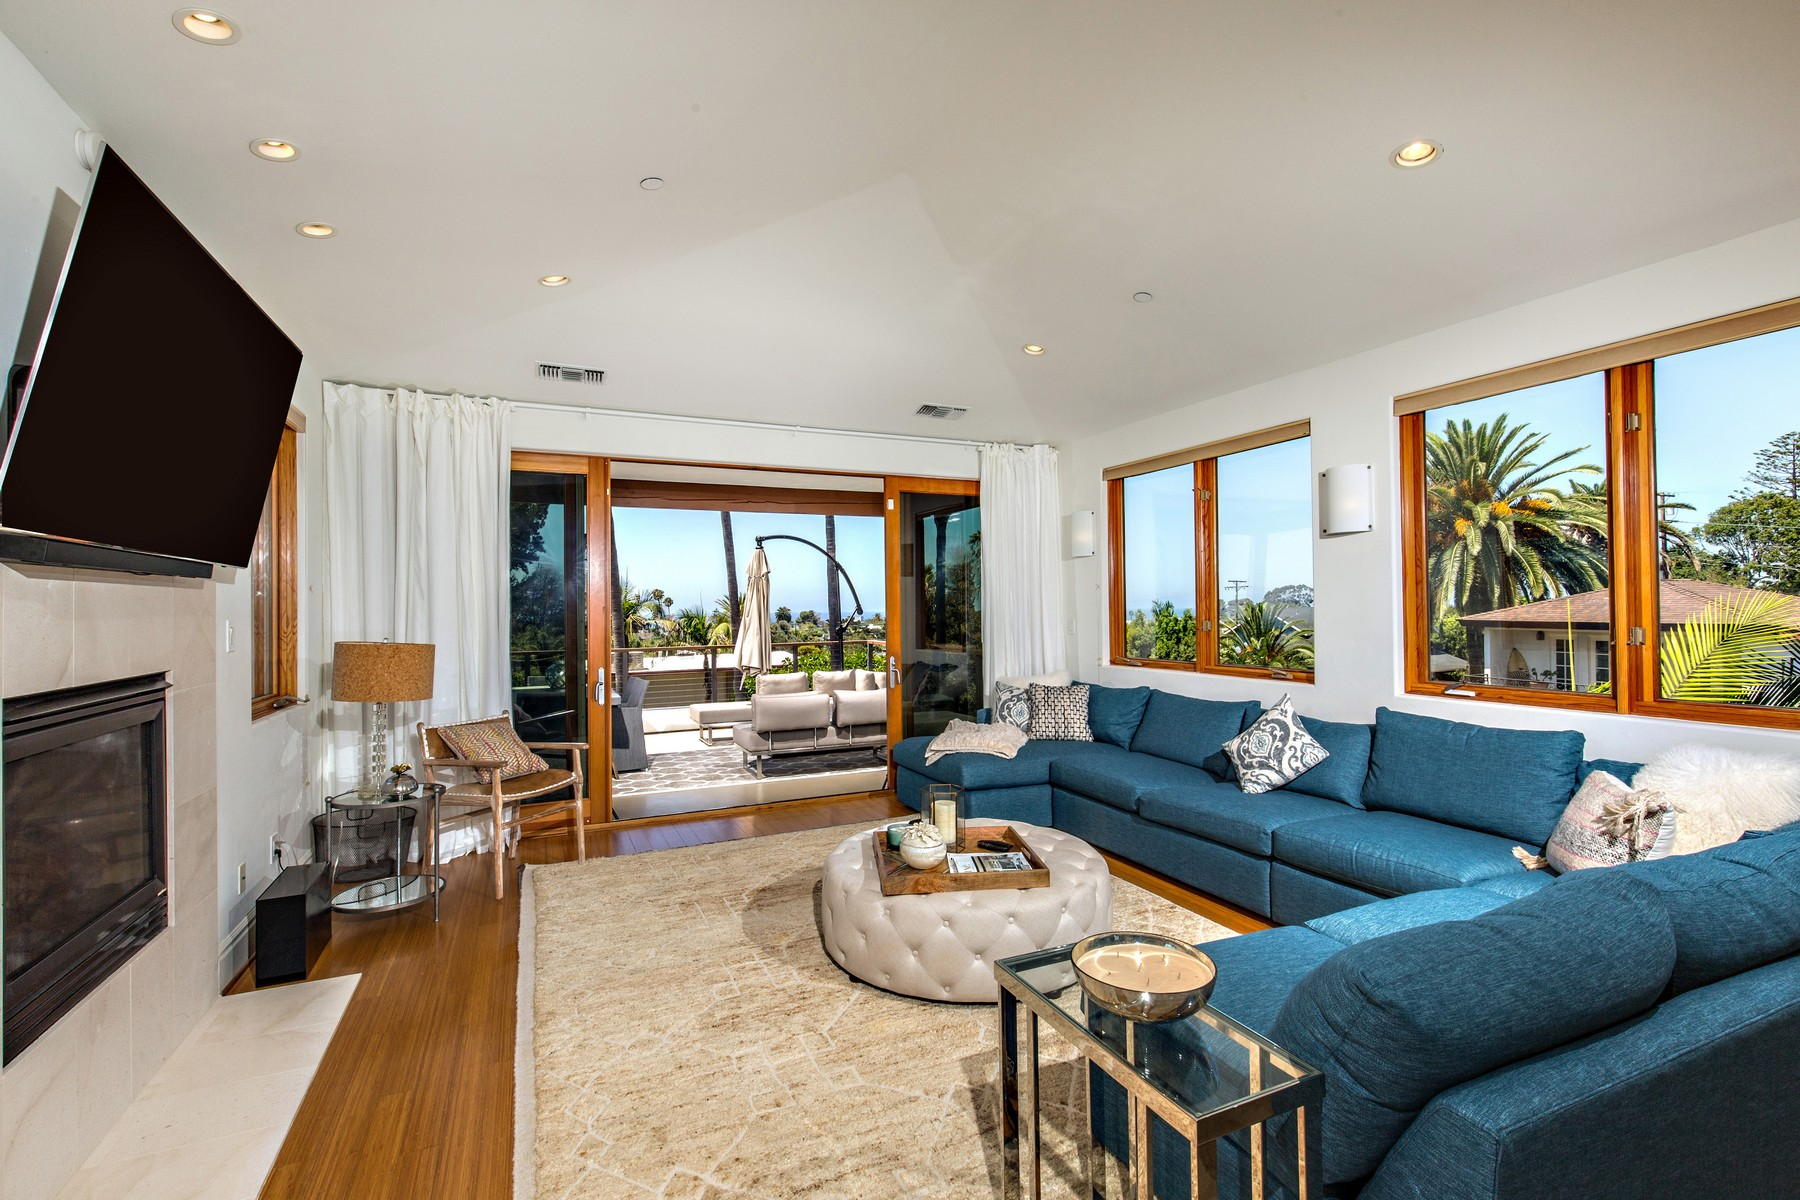 Additional photo for property listing at 733 Stratford Drive  Encinitas, Californie 92024 États-Unis